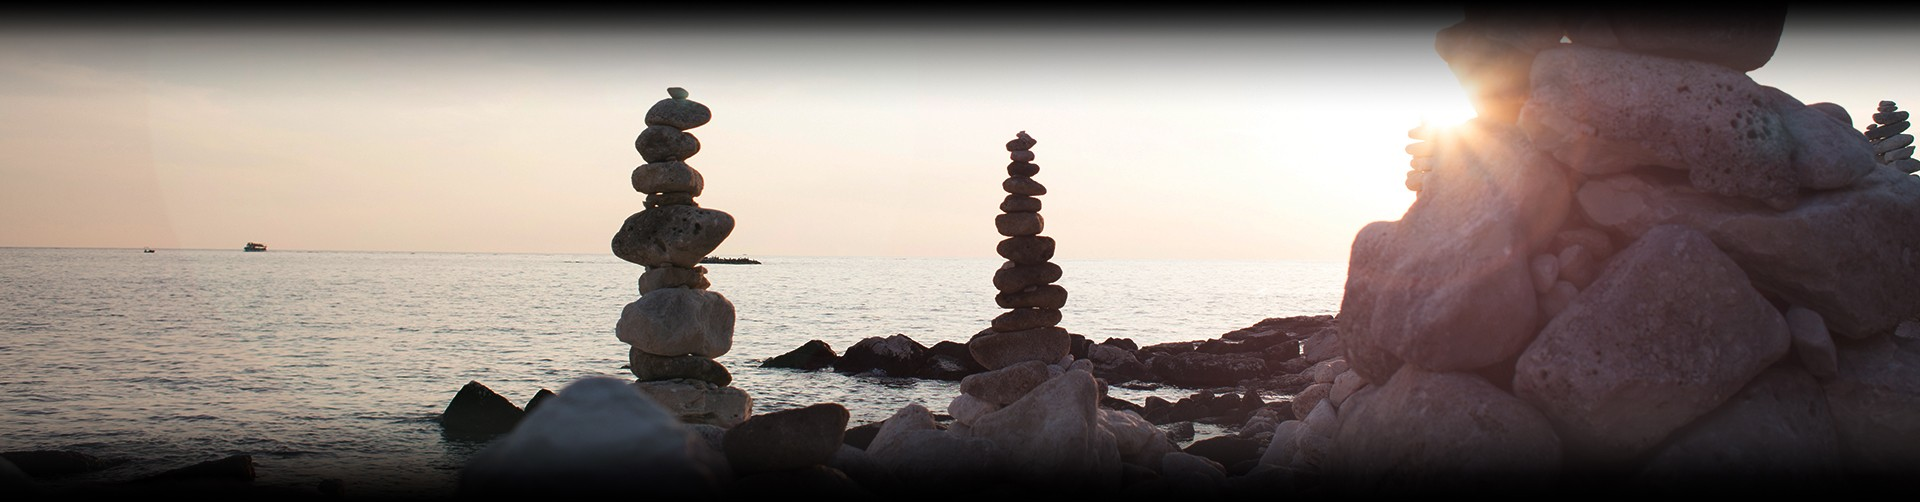 in defense of rock stacking